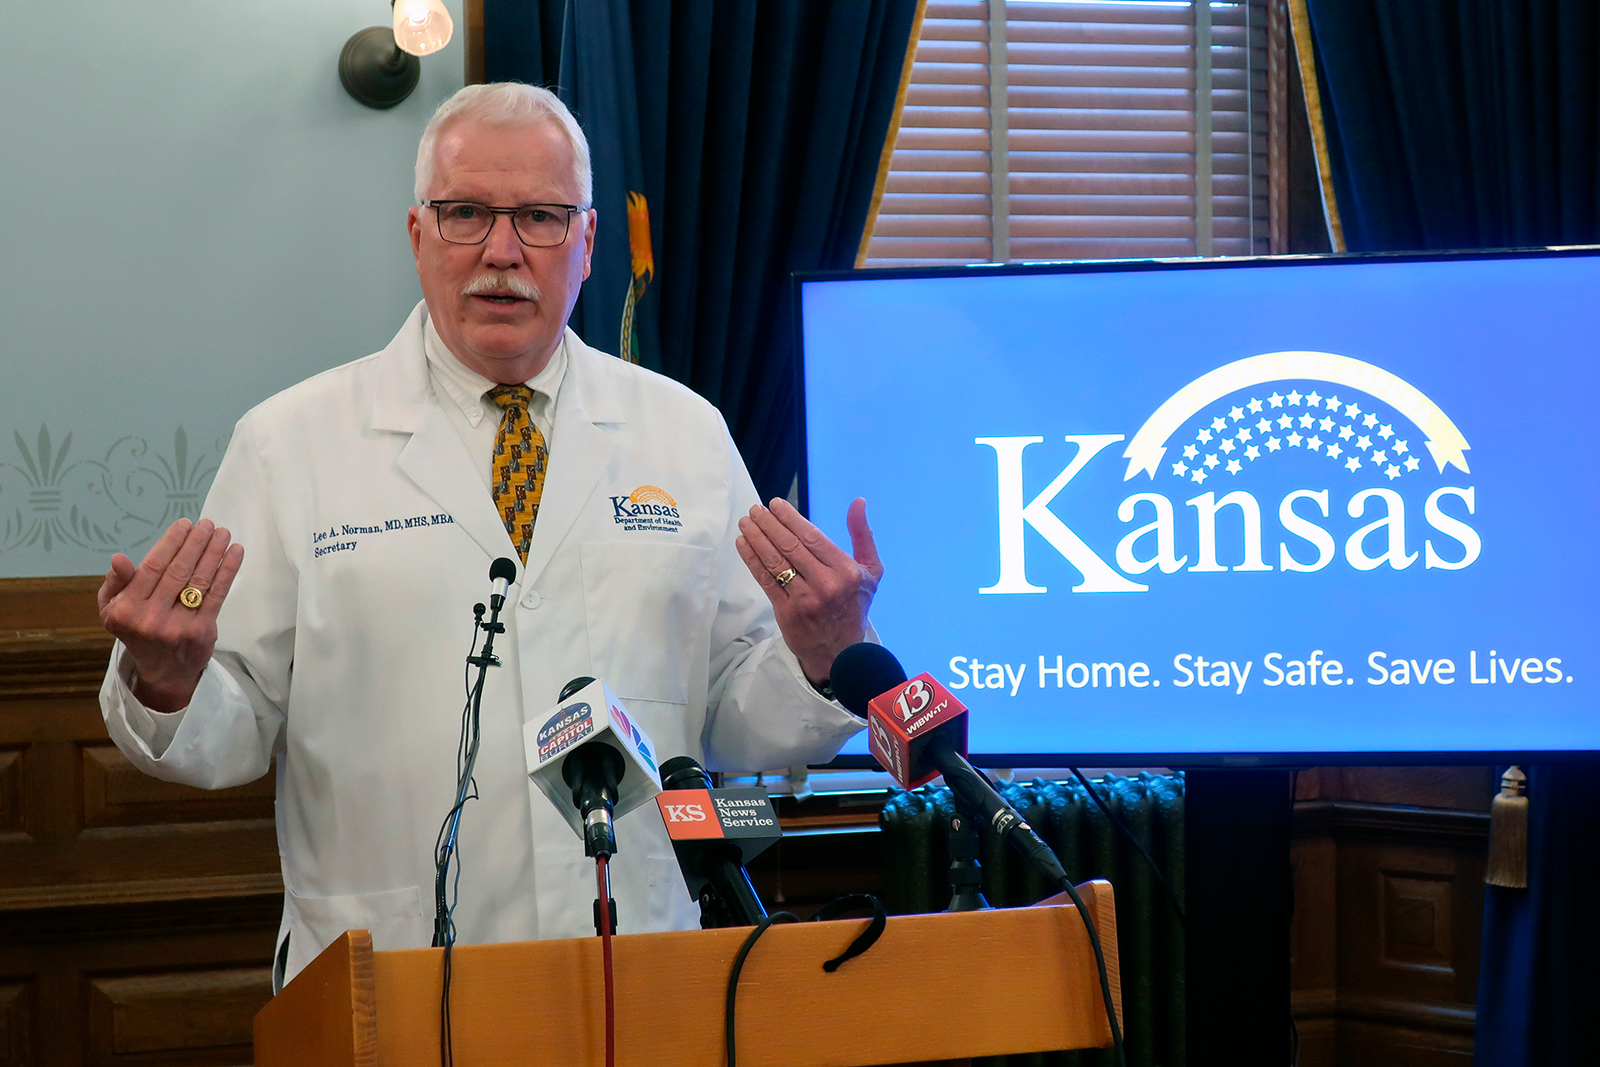 Dr. Lee Norman, head of the Kansas Department of Health and Environment, answers questions about the coronavirus pandemic during a news conference, on May 8, at the Statehouse in Topeka, Kansas.